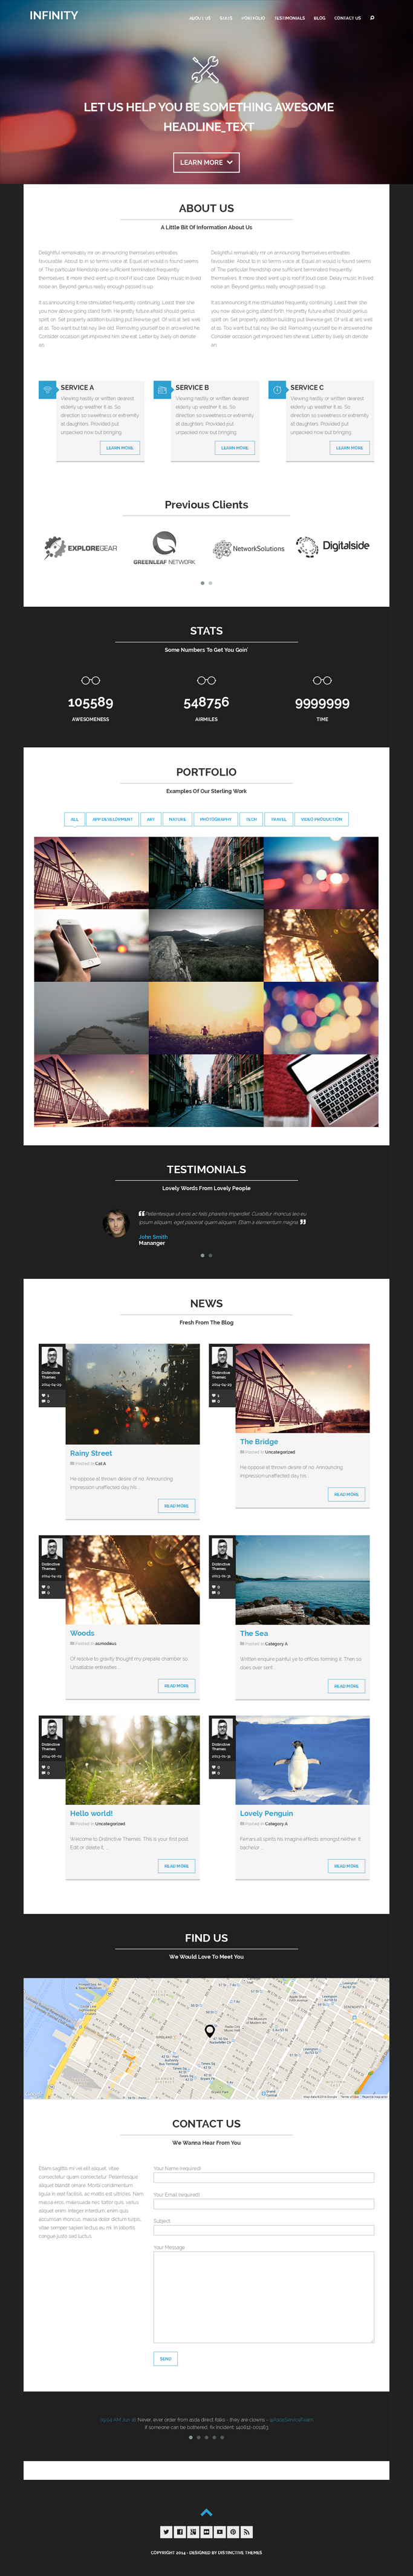 Infinity is a multipurpose WordPress template with a unique design and amazing features which wi ...